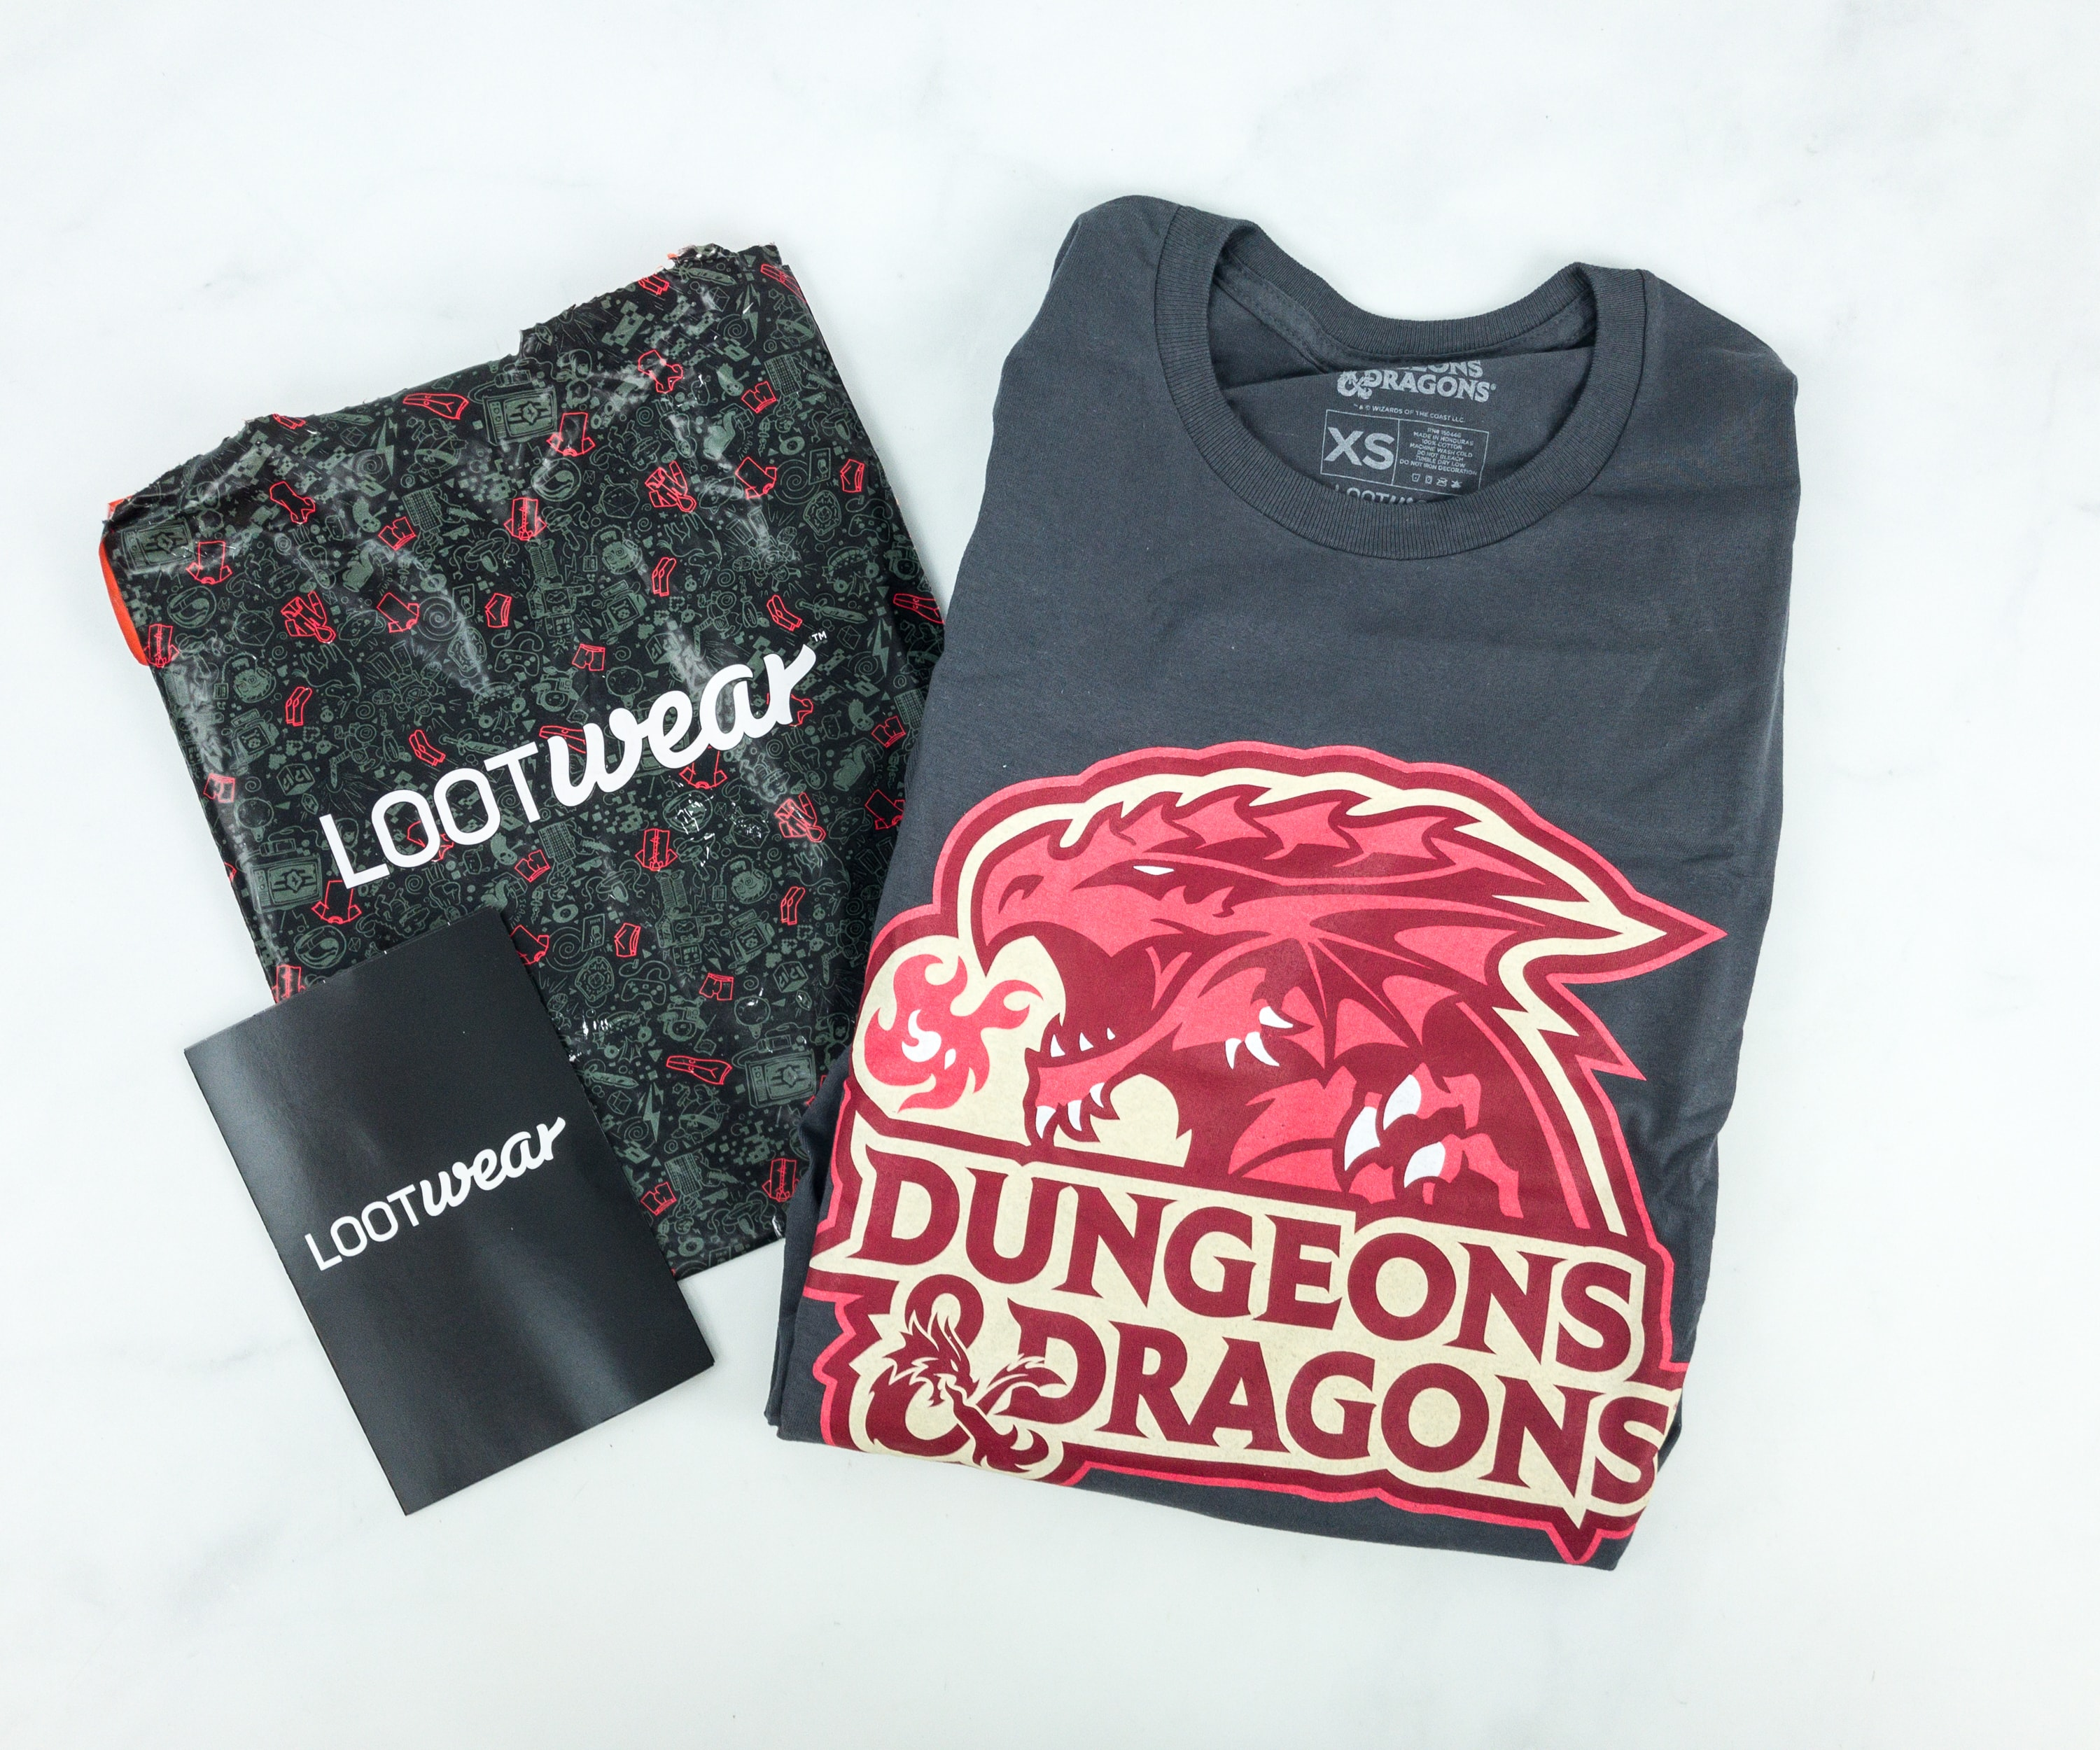 Loot Wearables Subscription by Loot Crate December 2018 Review & Coupon